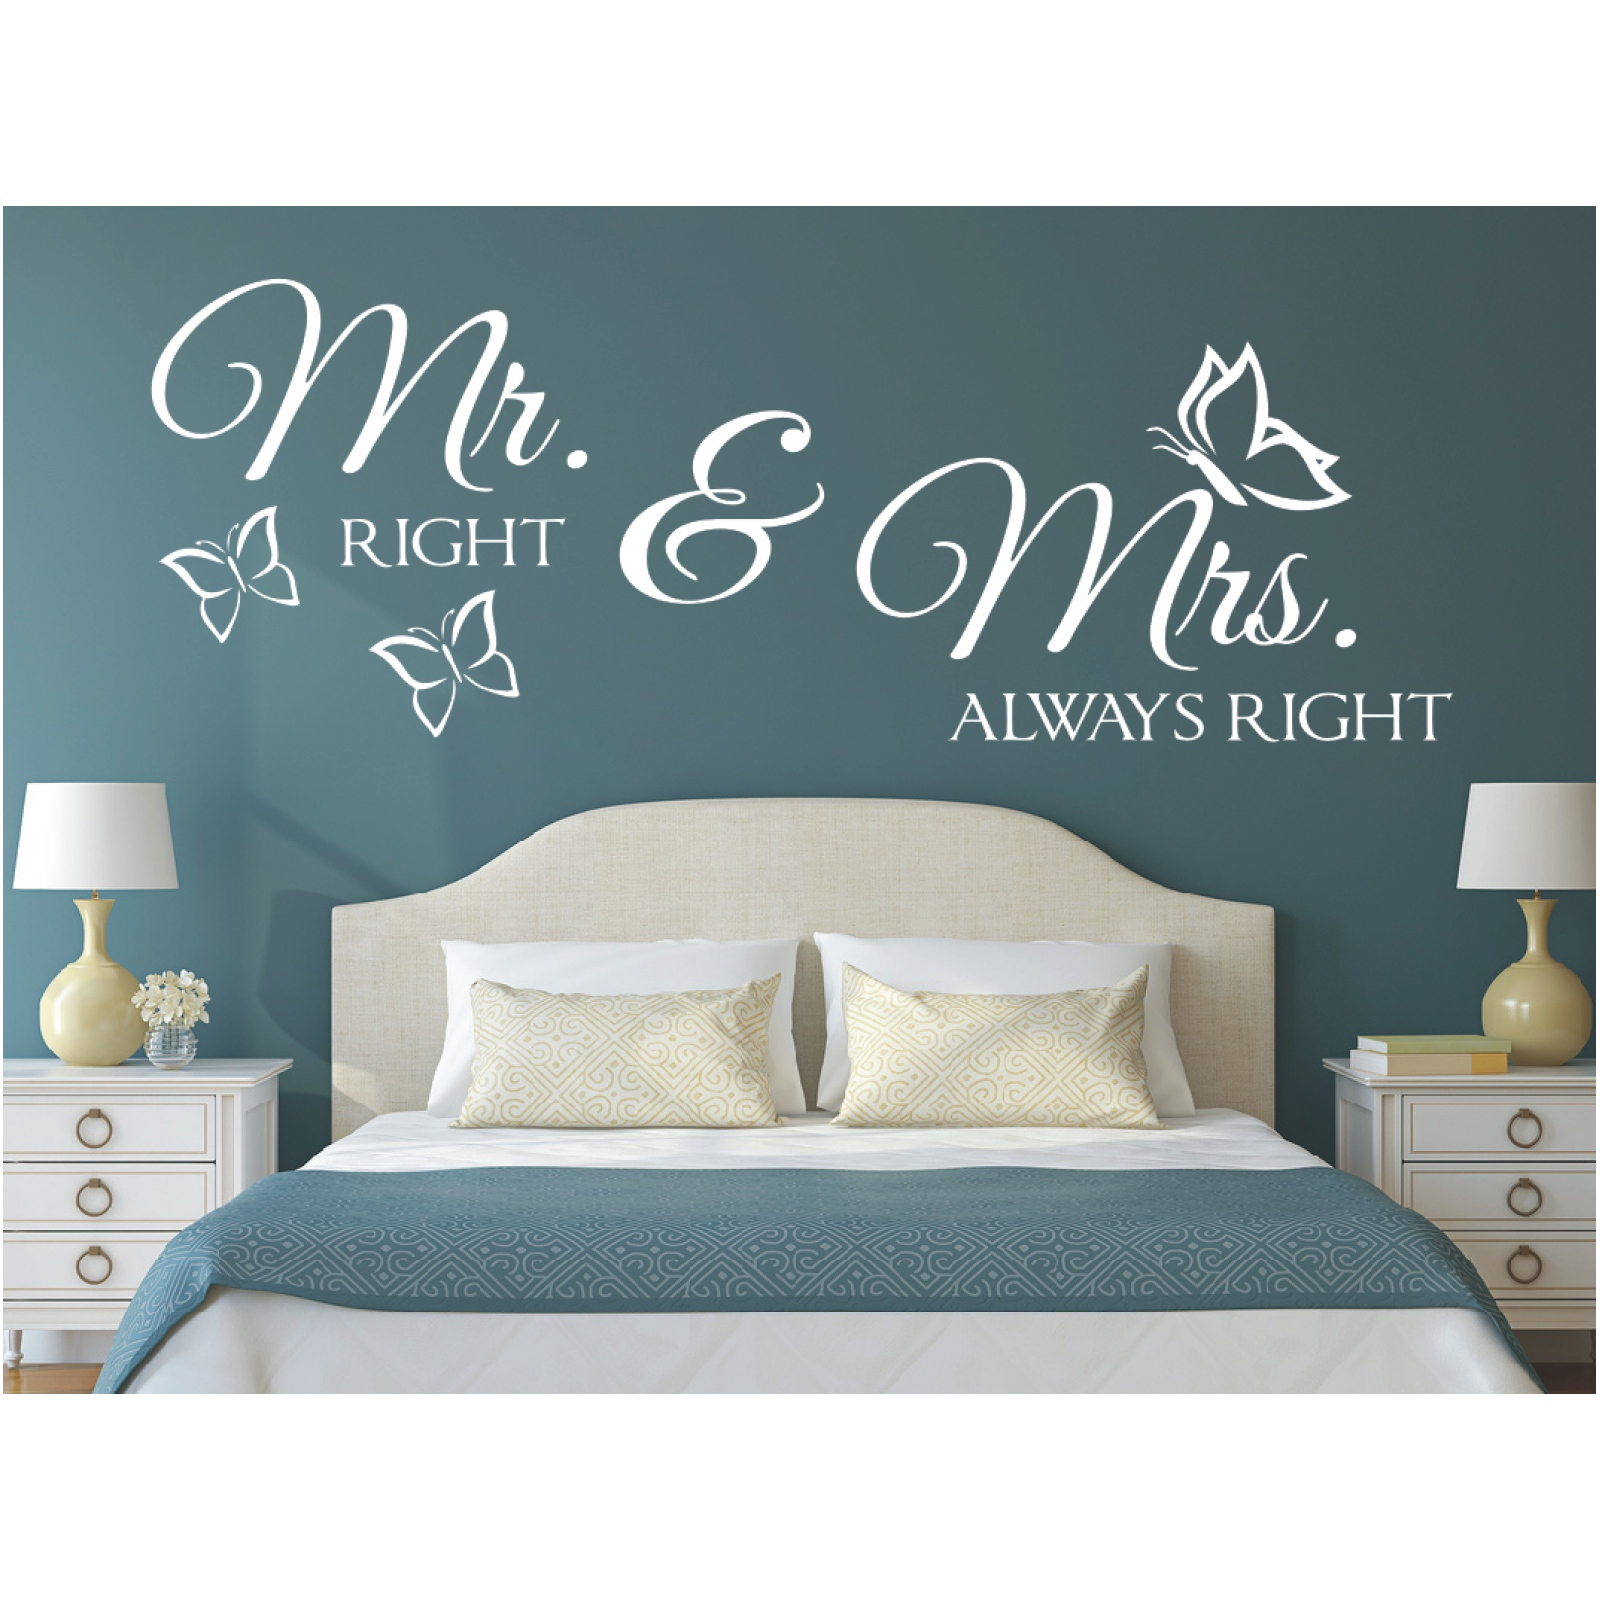 Wandtattoo Schlafzimmer Unendlich Wandtattoo Spruch Mr Right Mrs Always Right Hochzeit Wandaufkleber Sticker